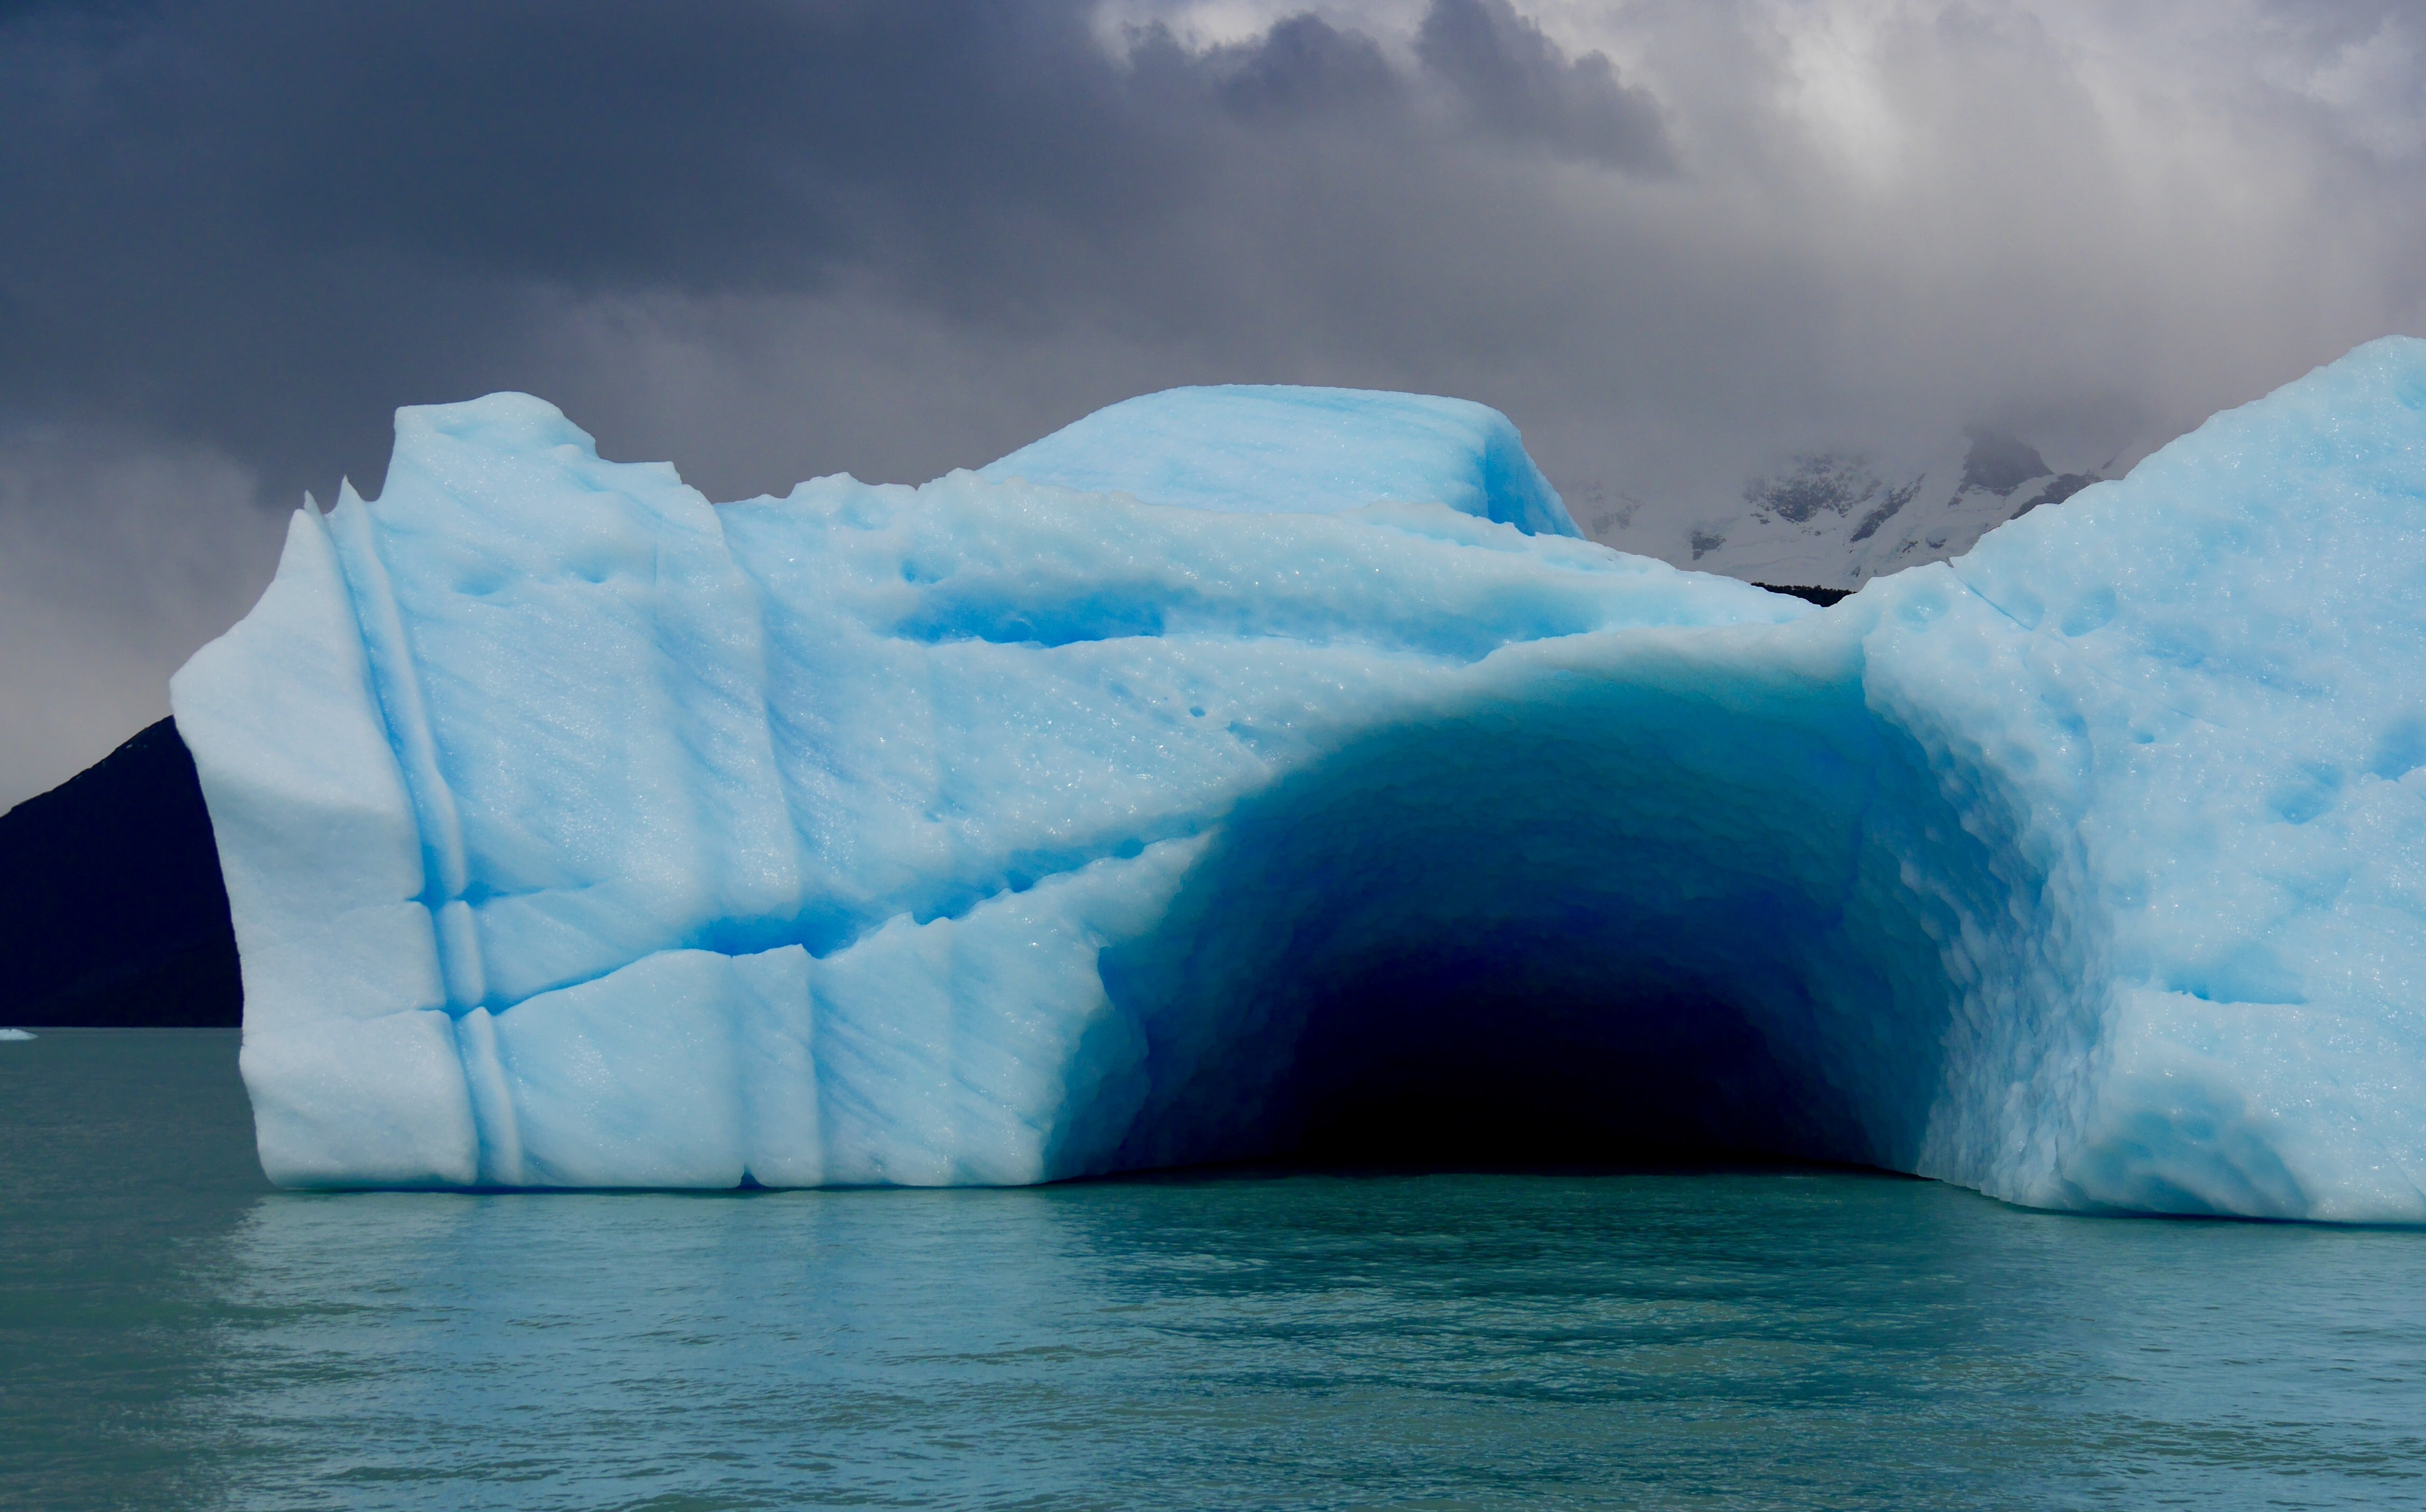 ice cave on top of body of water